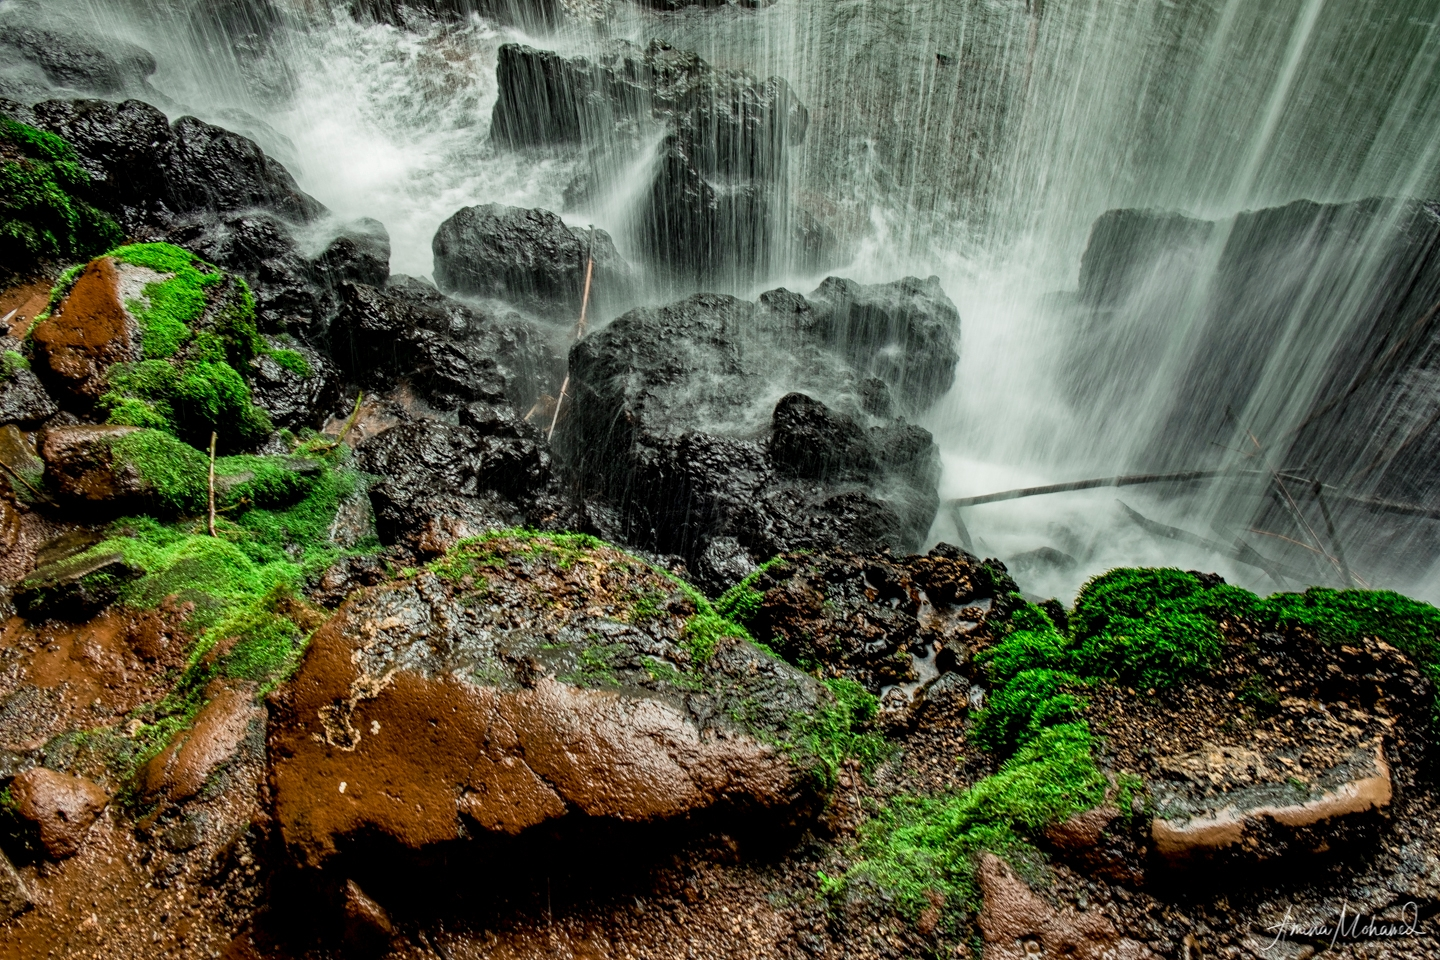 - Amabere GanyinamwiruLying near Fort Portal, in the western region of the Rwenzori Mountains, lies Amabere Ganyinamwiru, steeped in legend. Rocks with breast-like structures, waterfalls and open caves make this a site not to be missed.